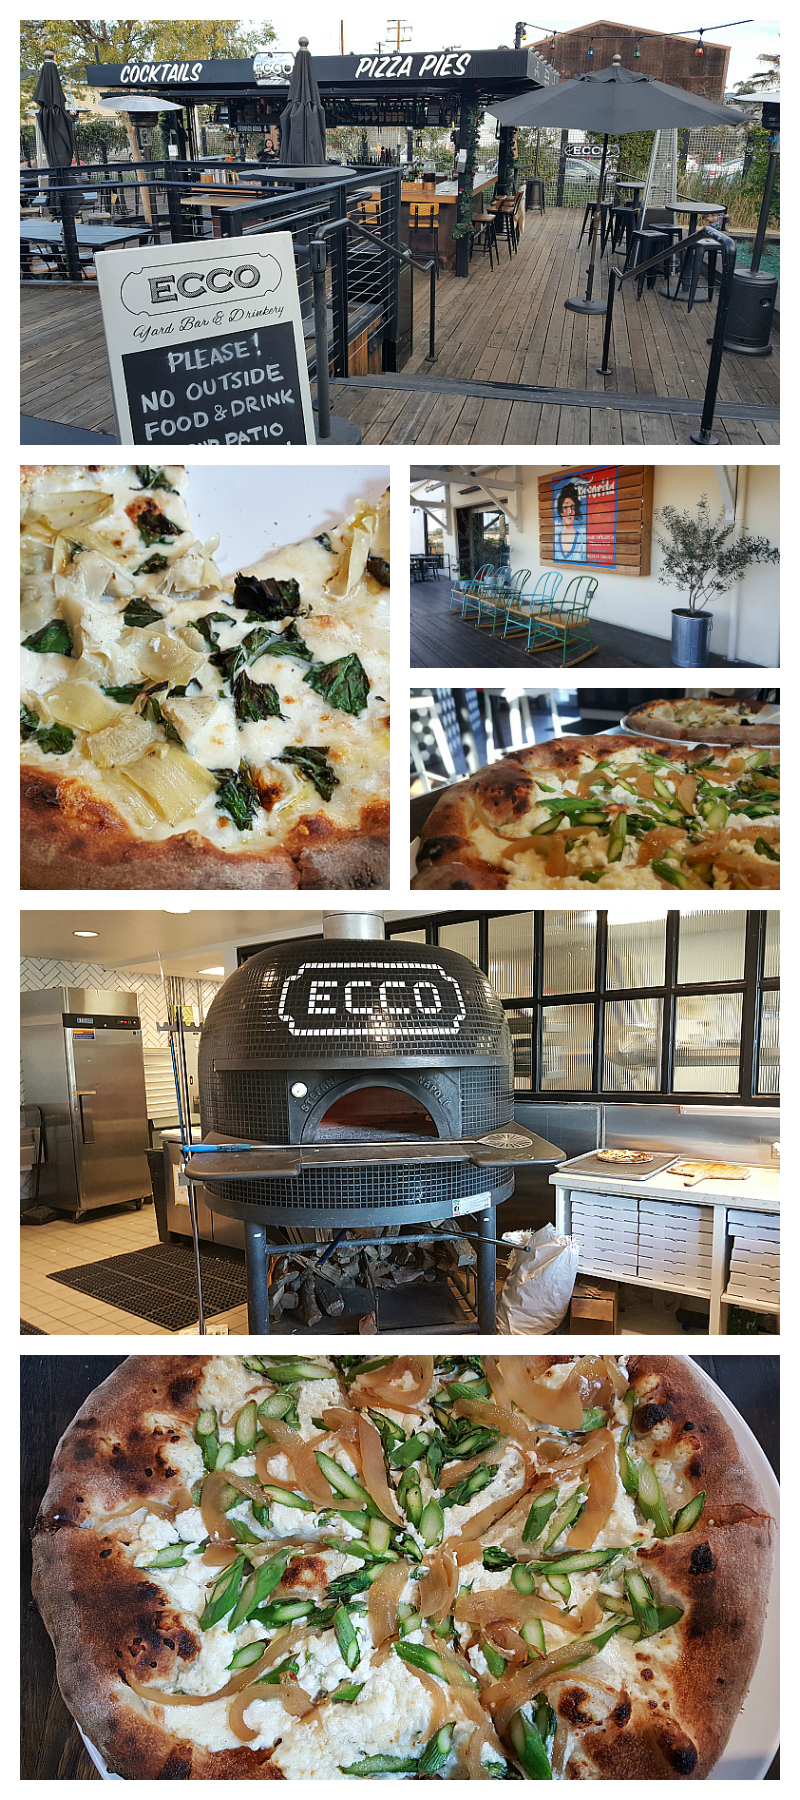 Anaheim Packing House Pizza at ECCO